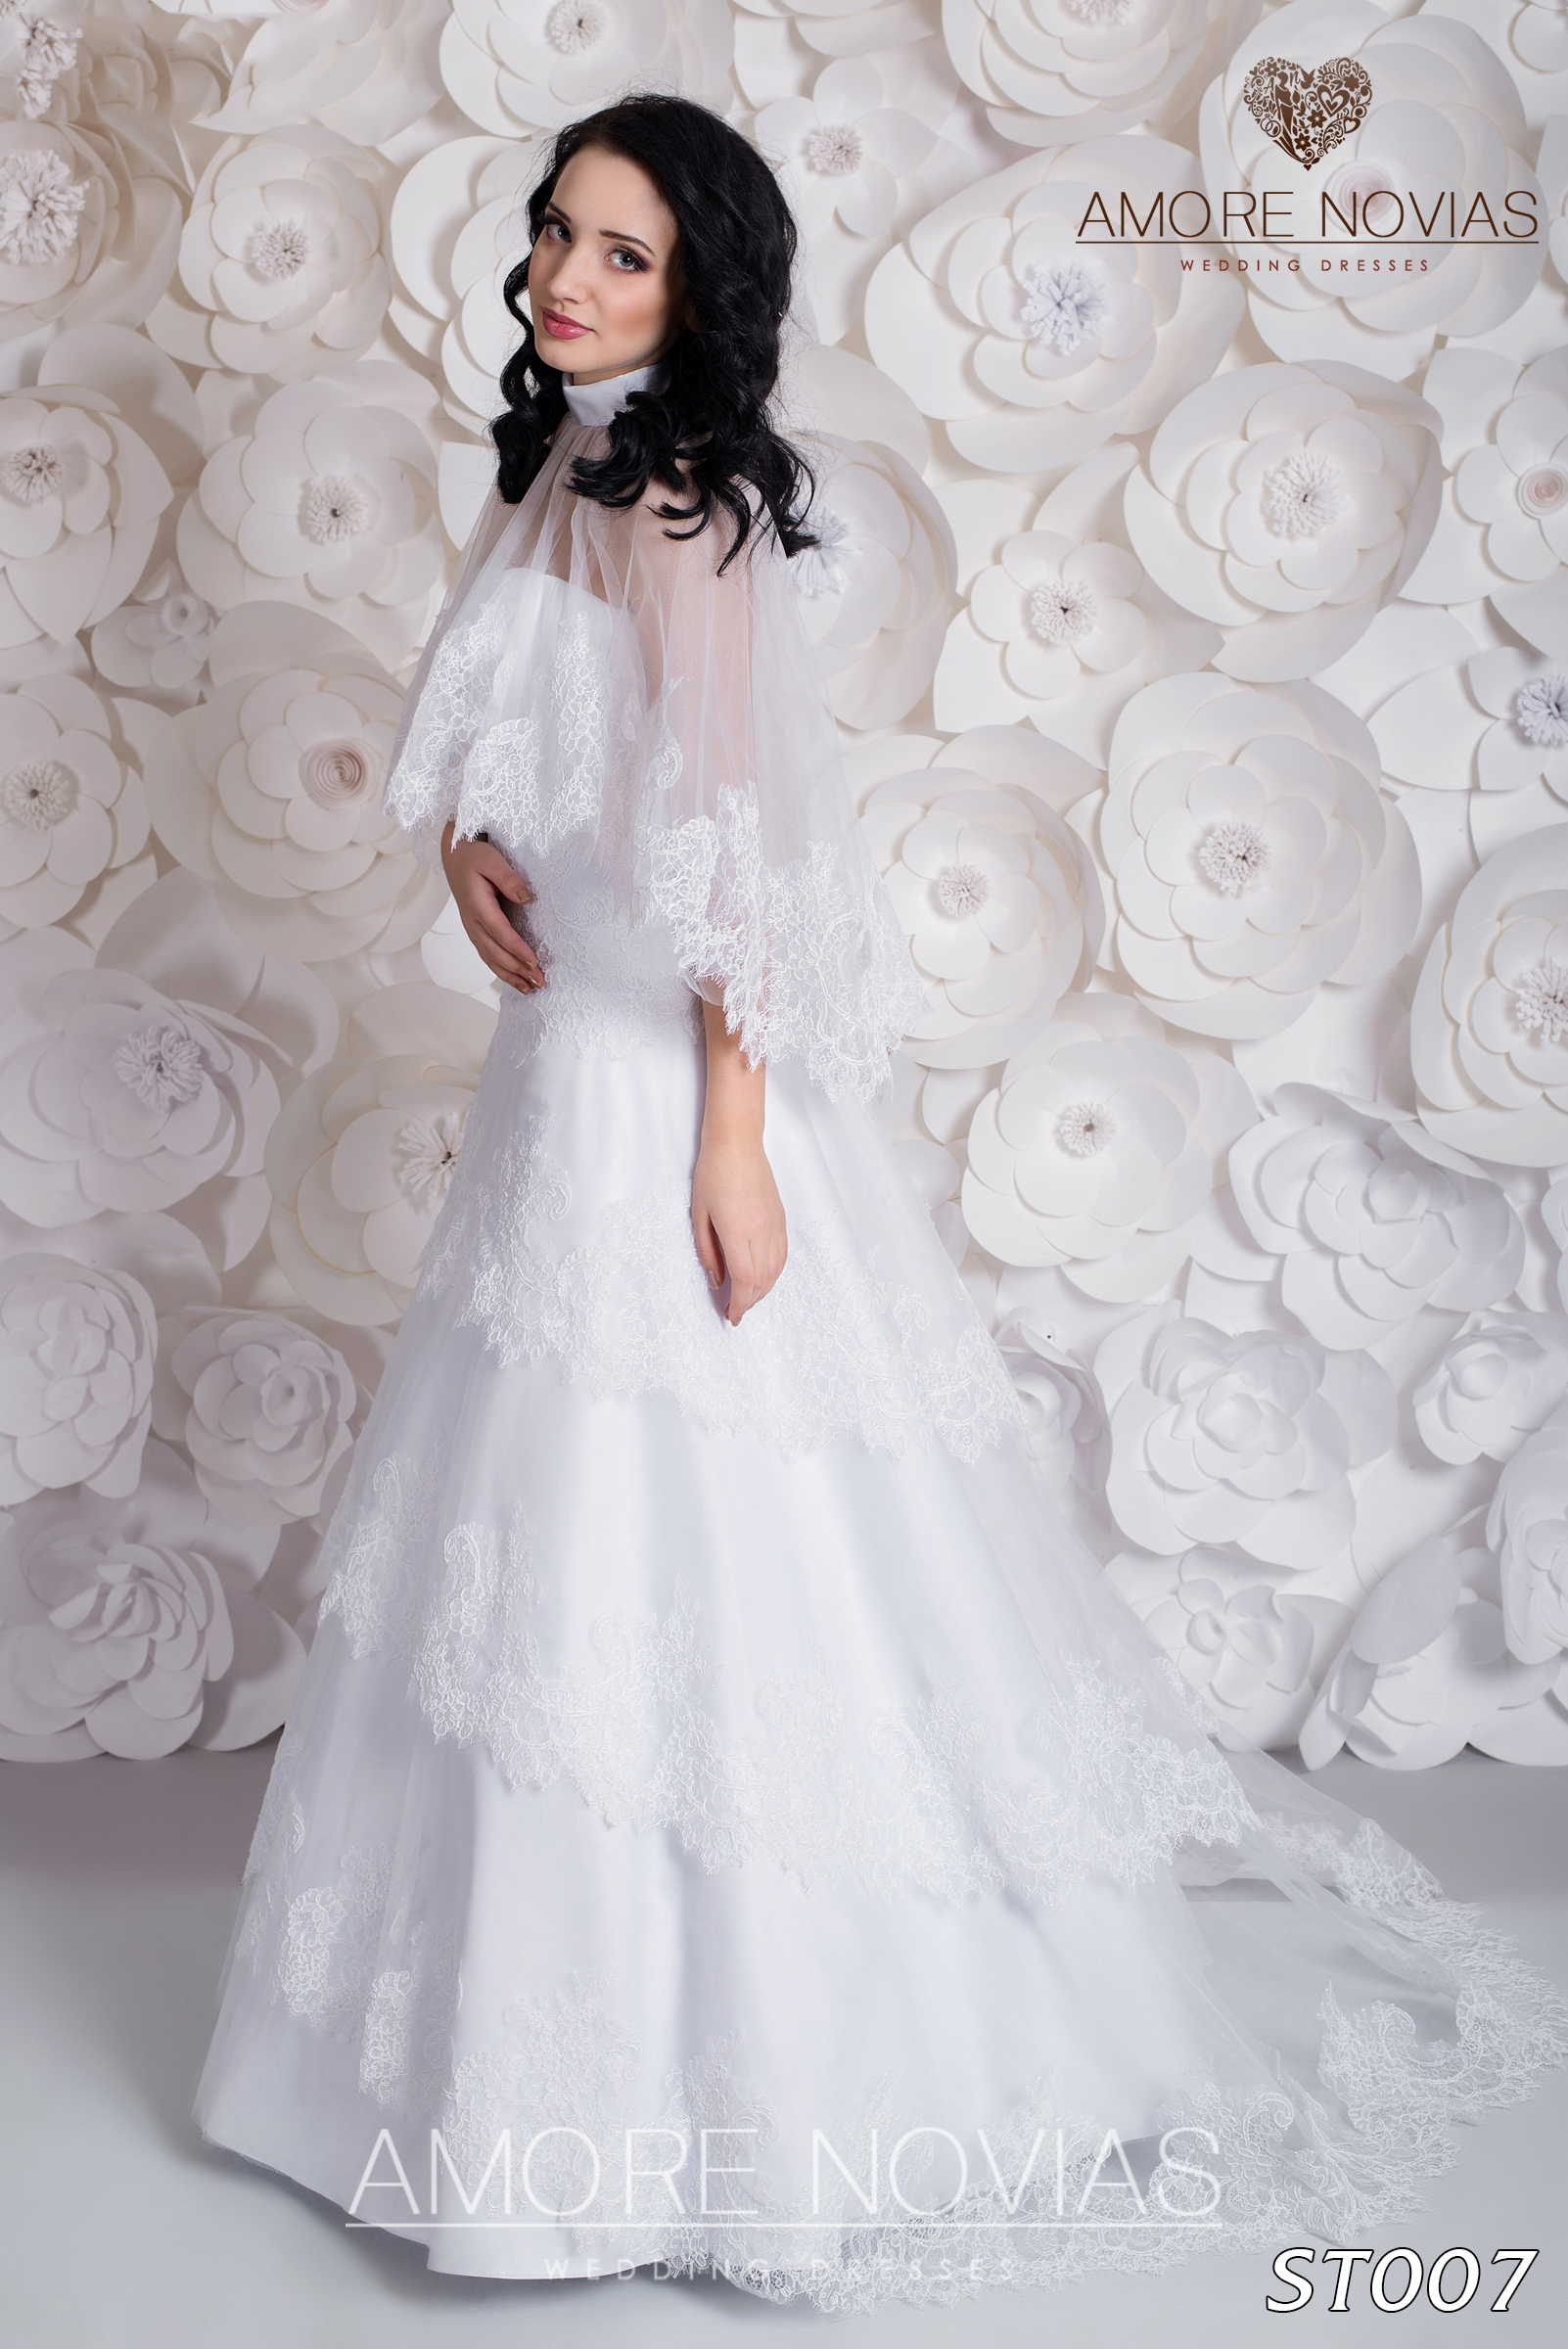 http://amore-novias.com/images/stories/virtuemart/product/st007.jpg